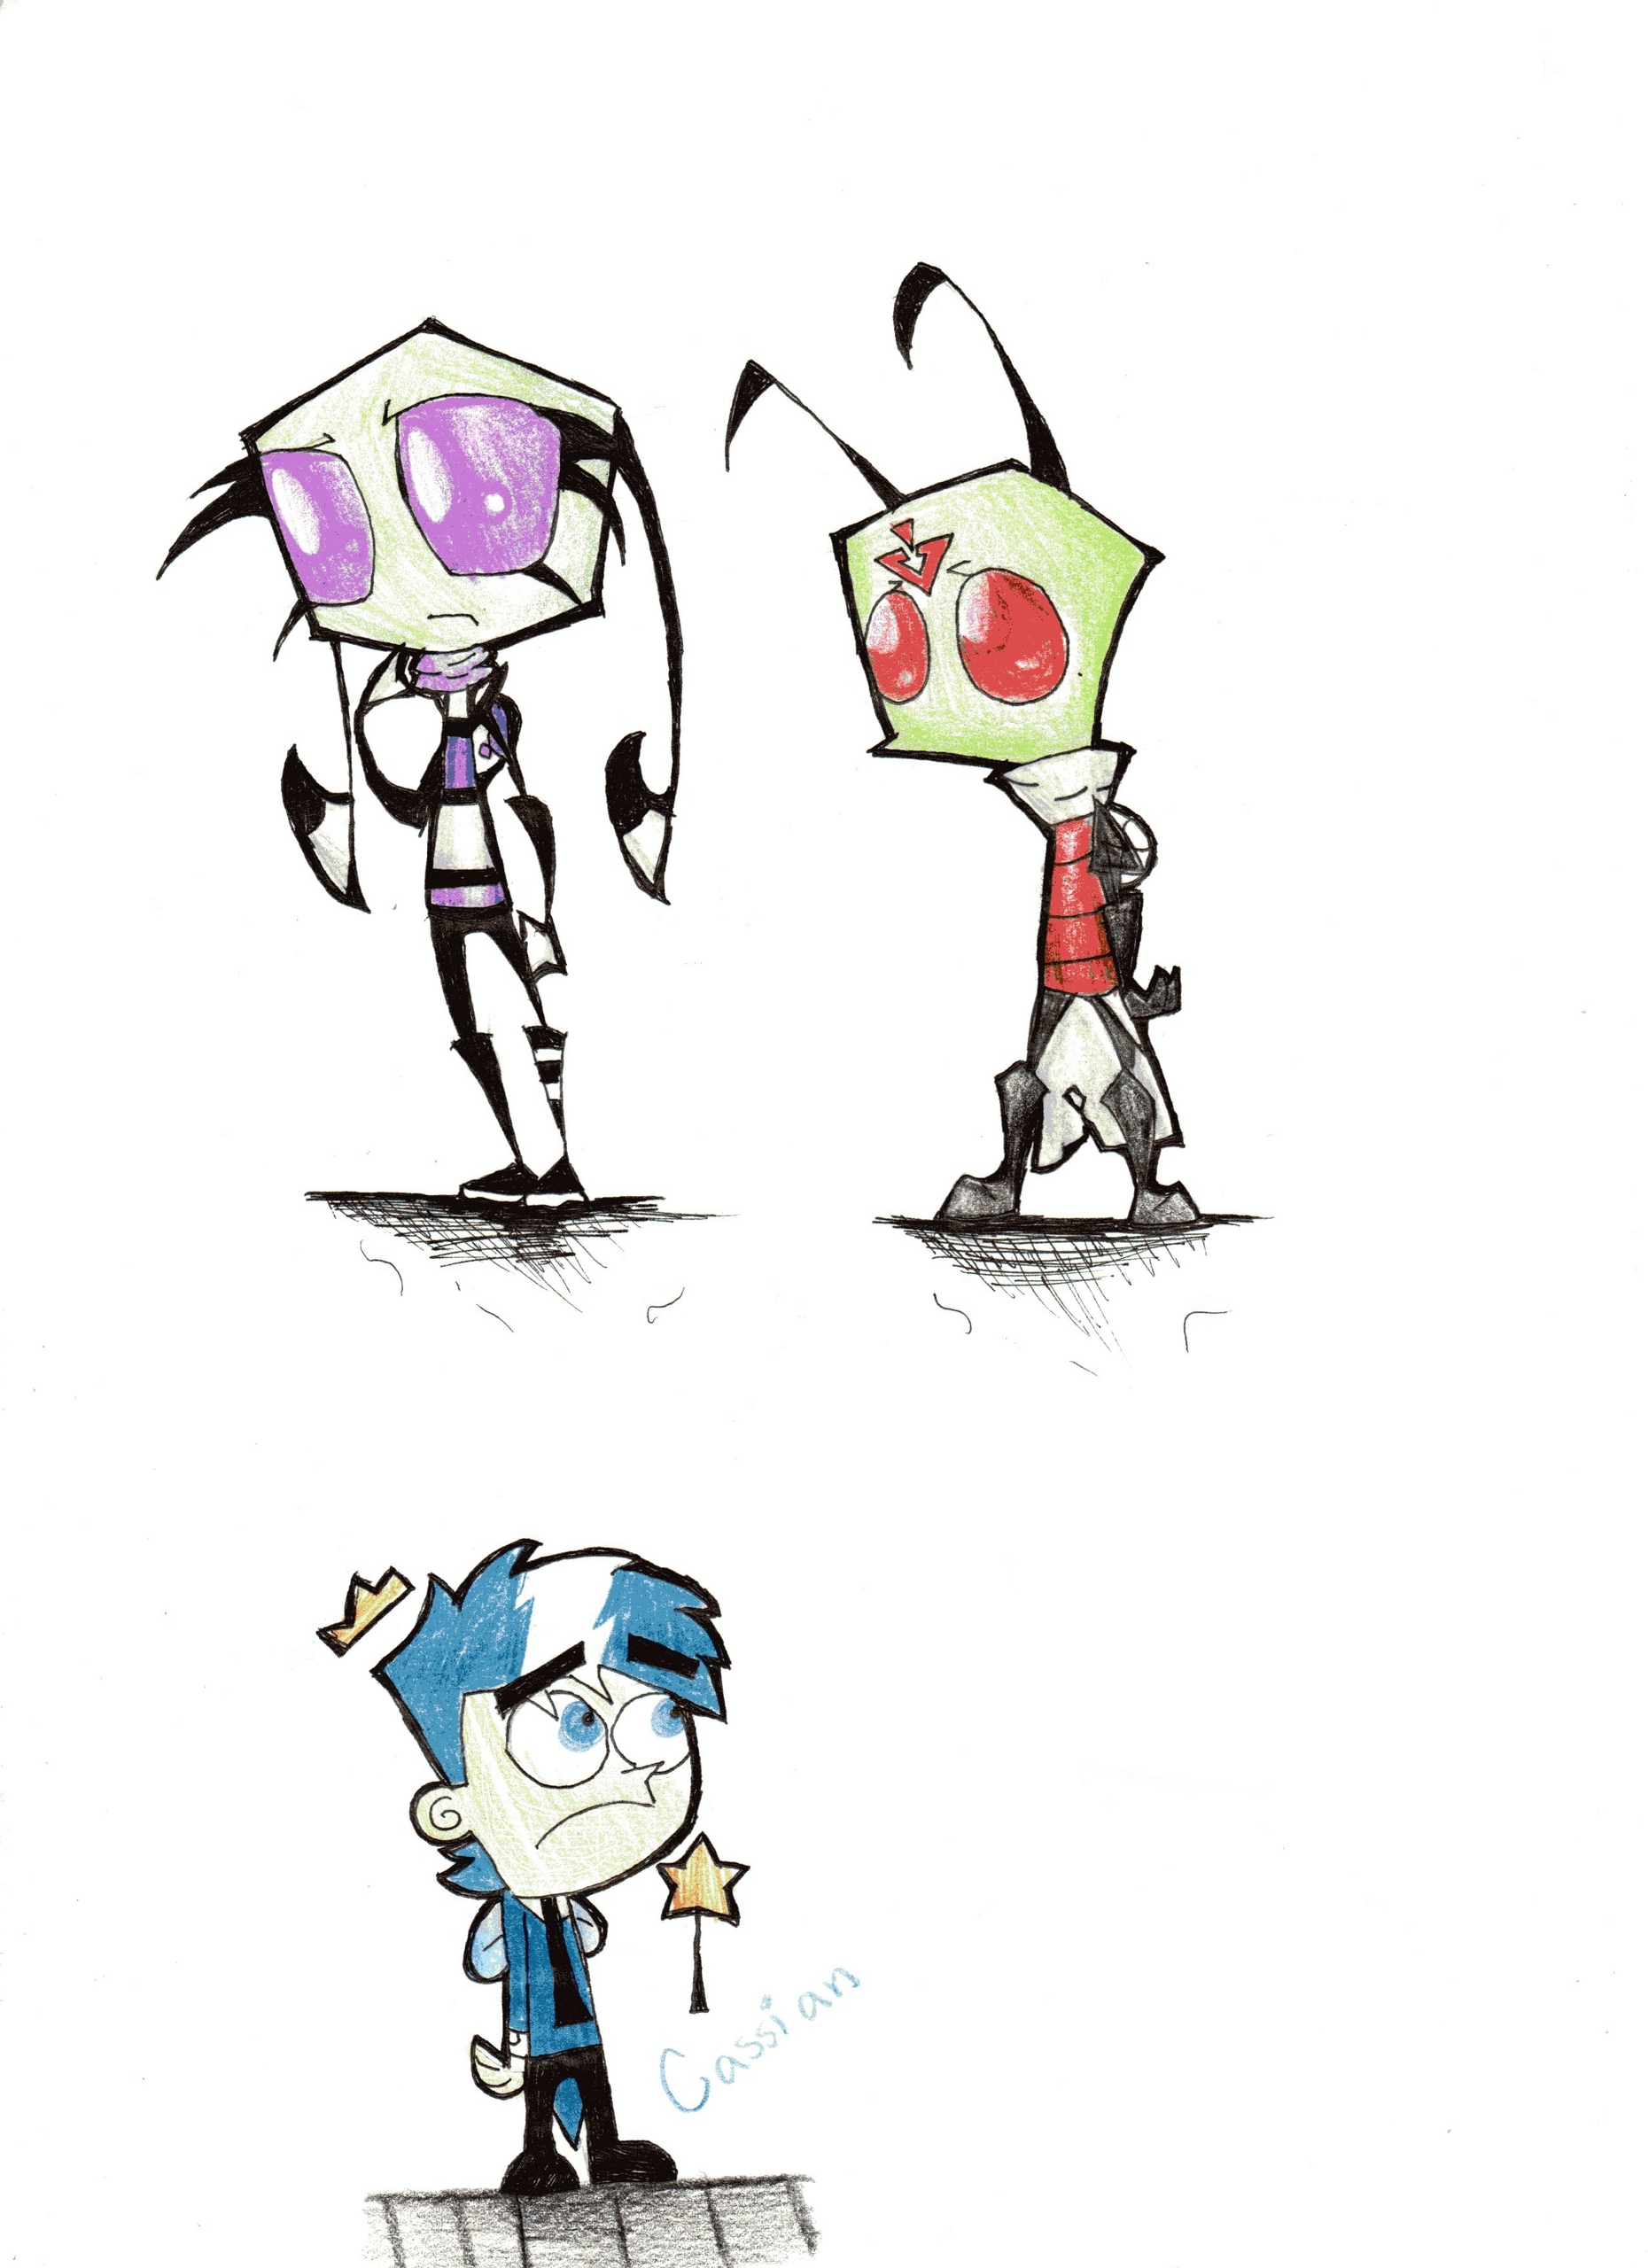 Invader Zim Characters | www.imgkid.com - The Image Kid ... Invader Zim Characters